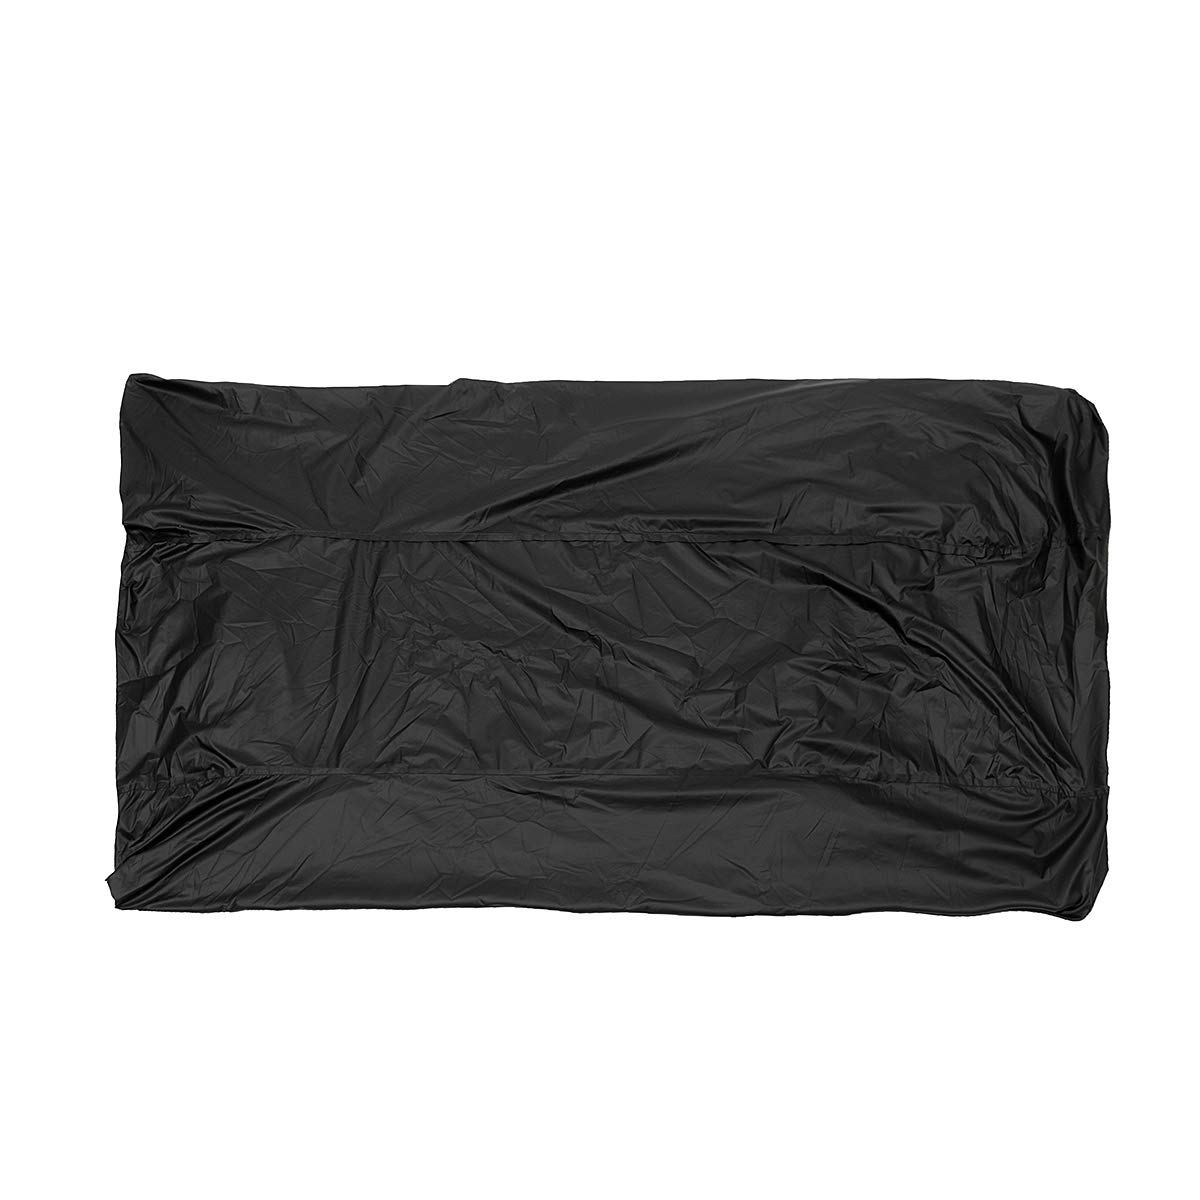 dDanke Black Rowing Machine Cover Sports Equipment Dust Covers for Outside Weather Rain & Sunshine Resistance 285x51x89cm by dDanke (Image #7)